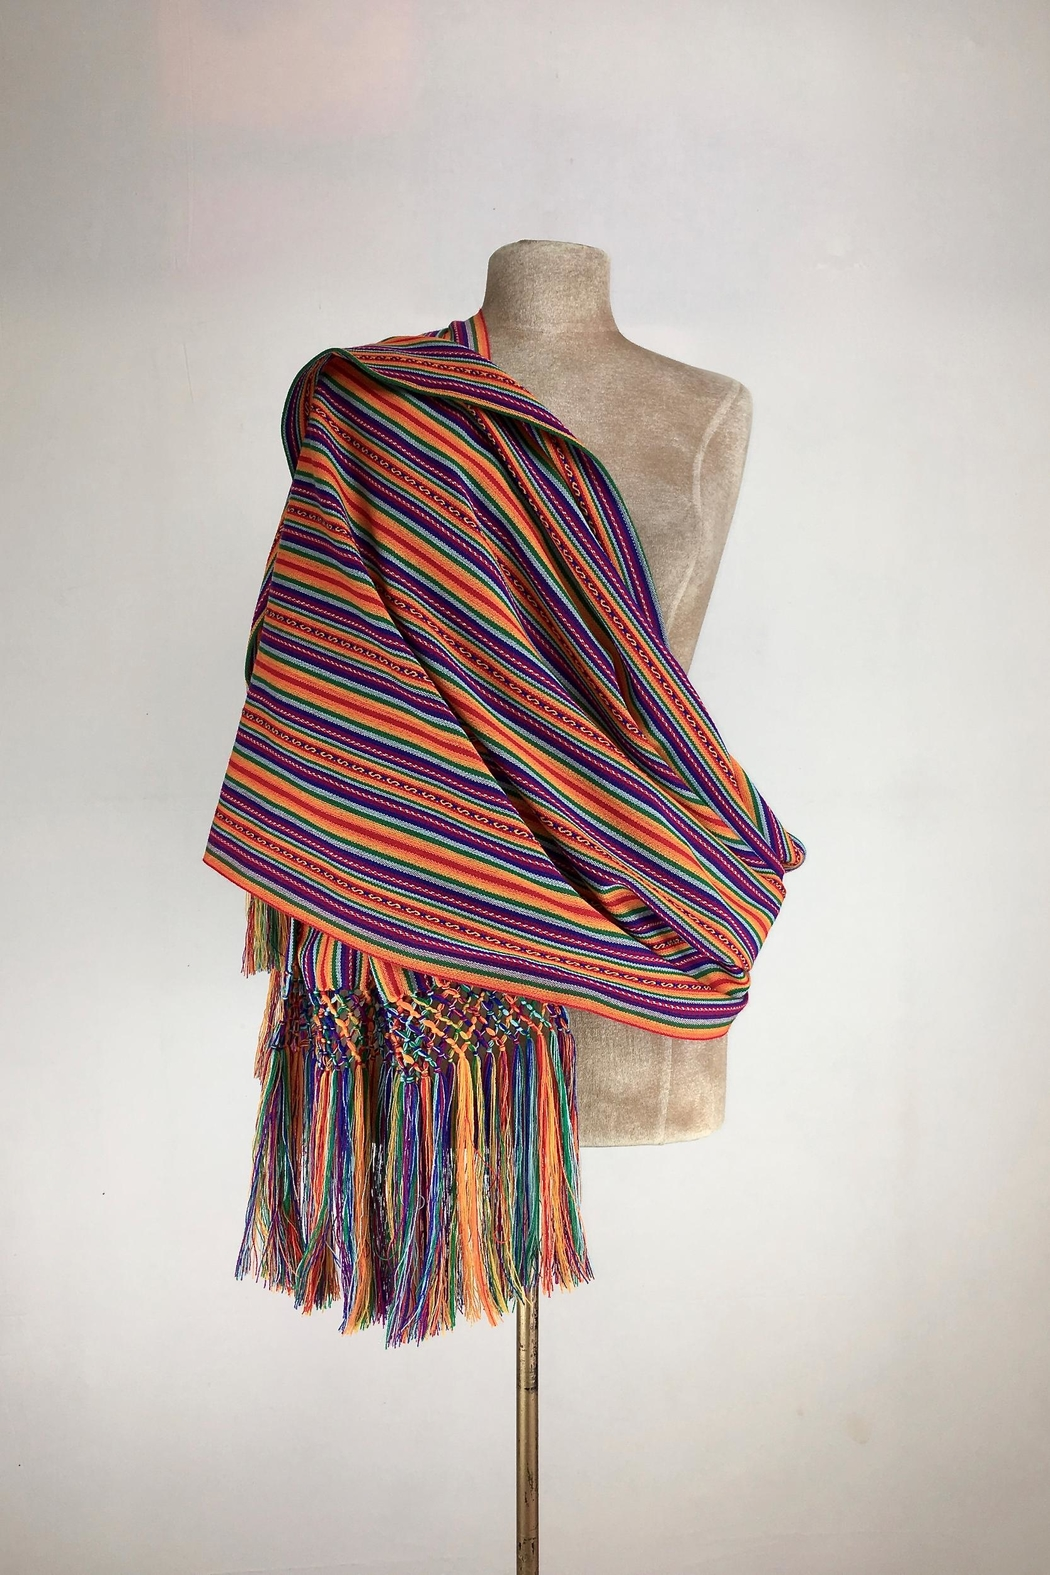 Unbranded Manta-Inca-Woven-Textile Hancrafted Rebozo-Shawl-Wrap - Main Image